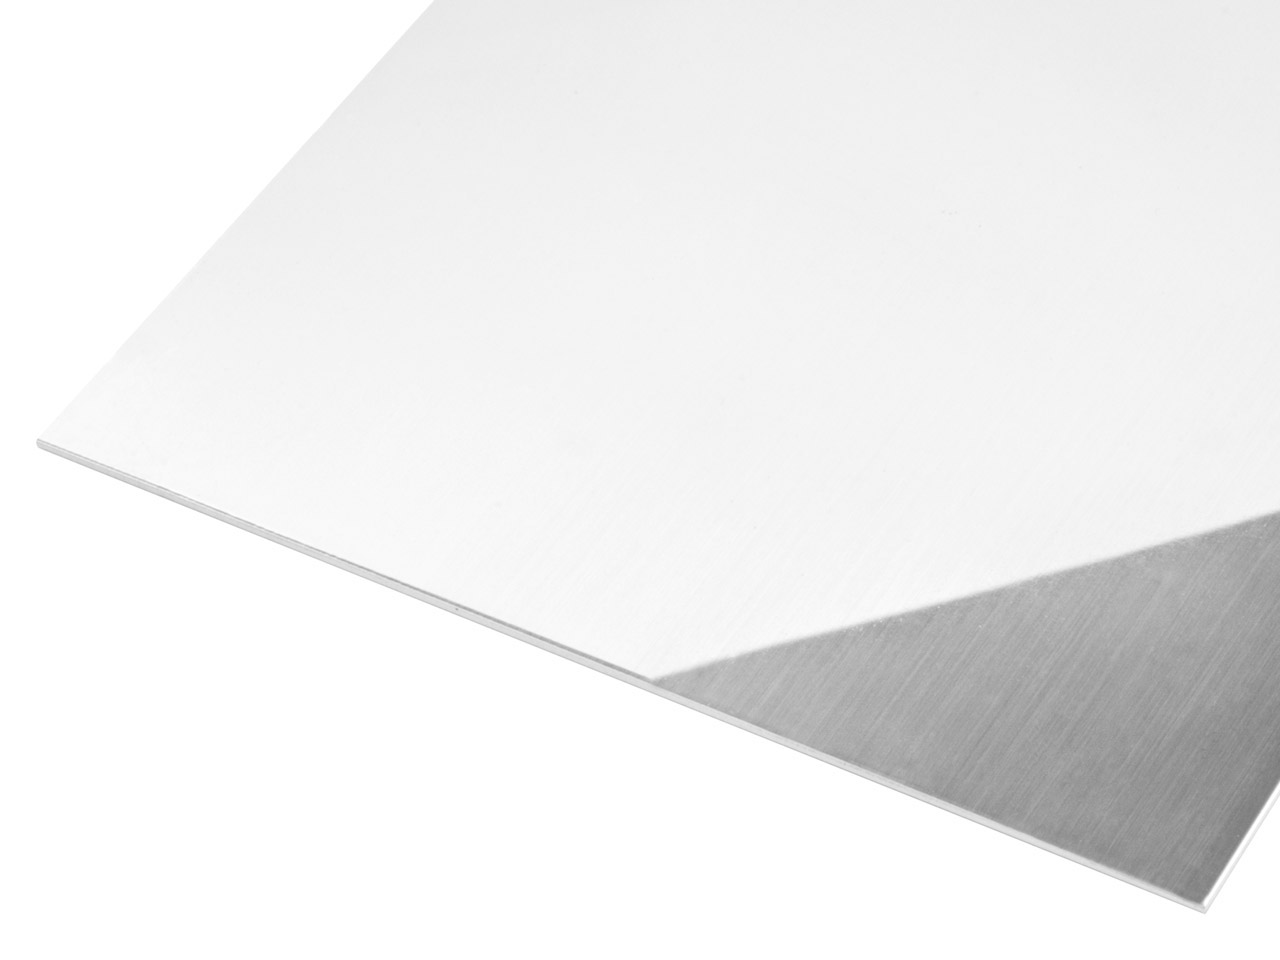 Sterling Silver Strip 0.25mm Thick, Fully Annealed Soft